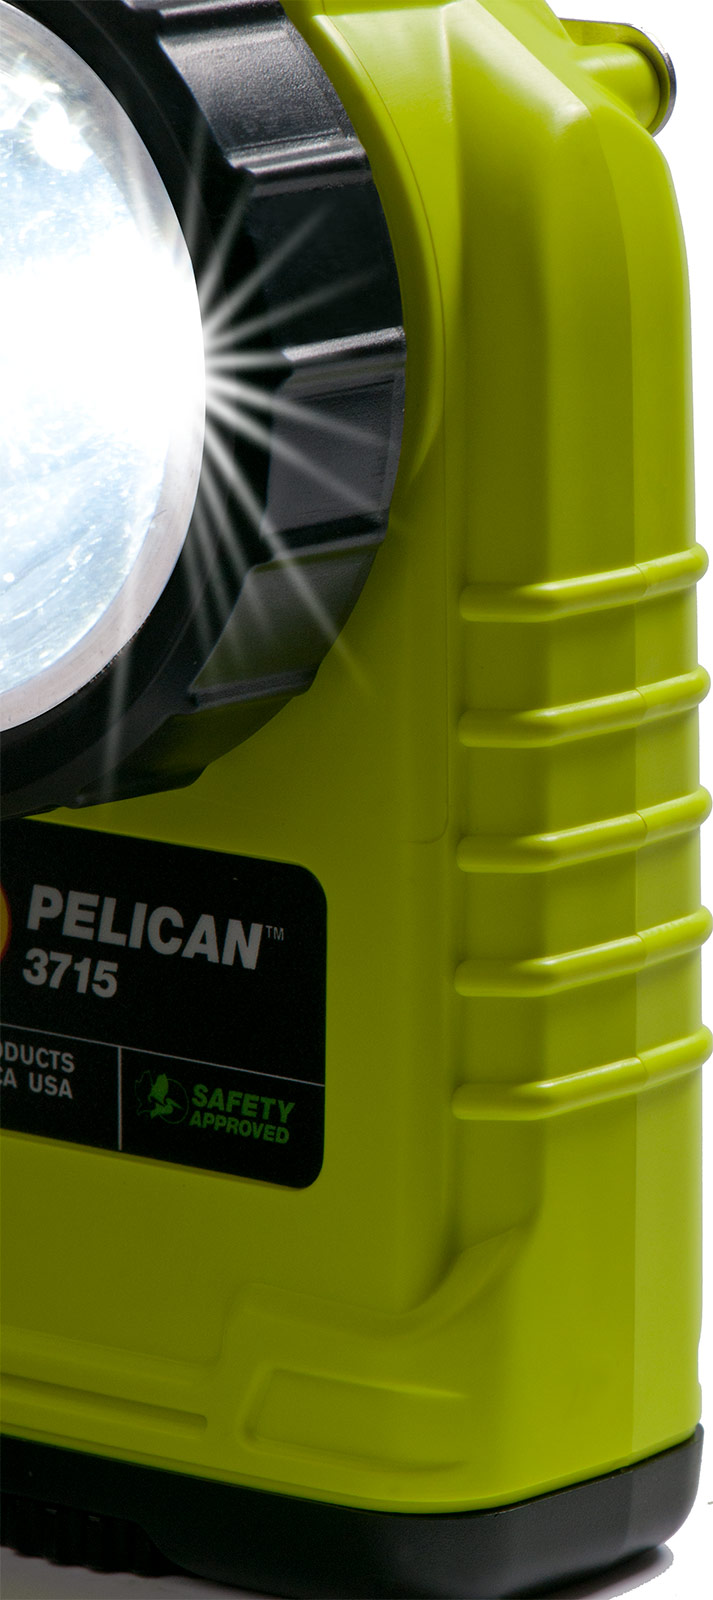 pelican 3715 right angle firefighter light